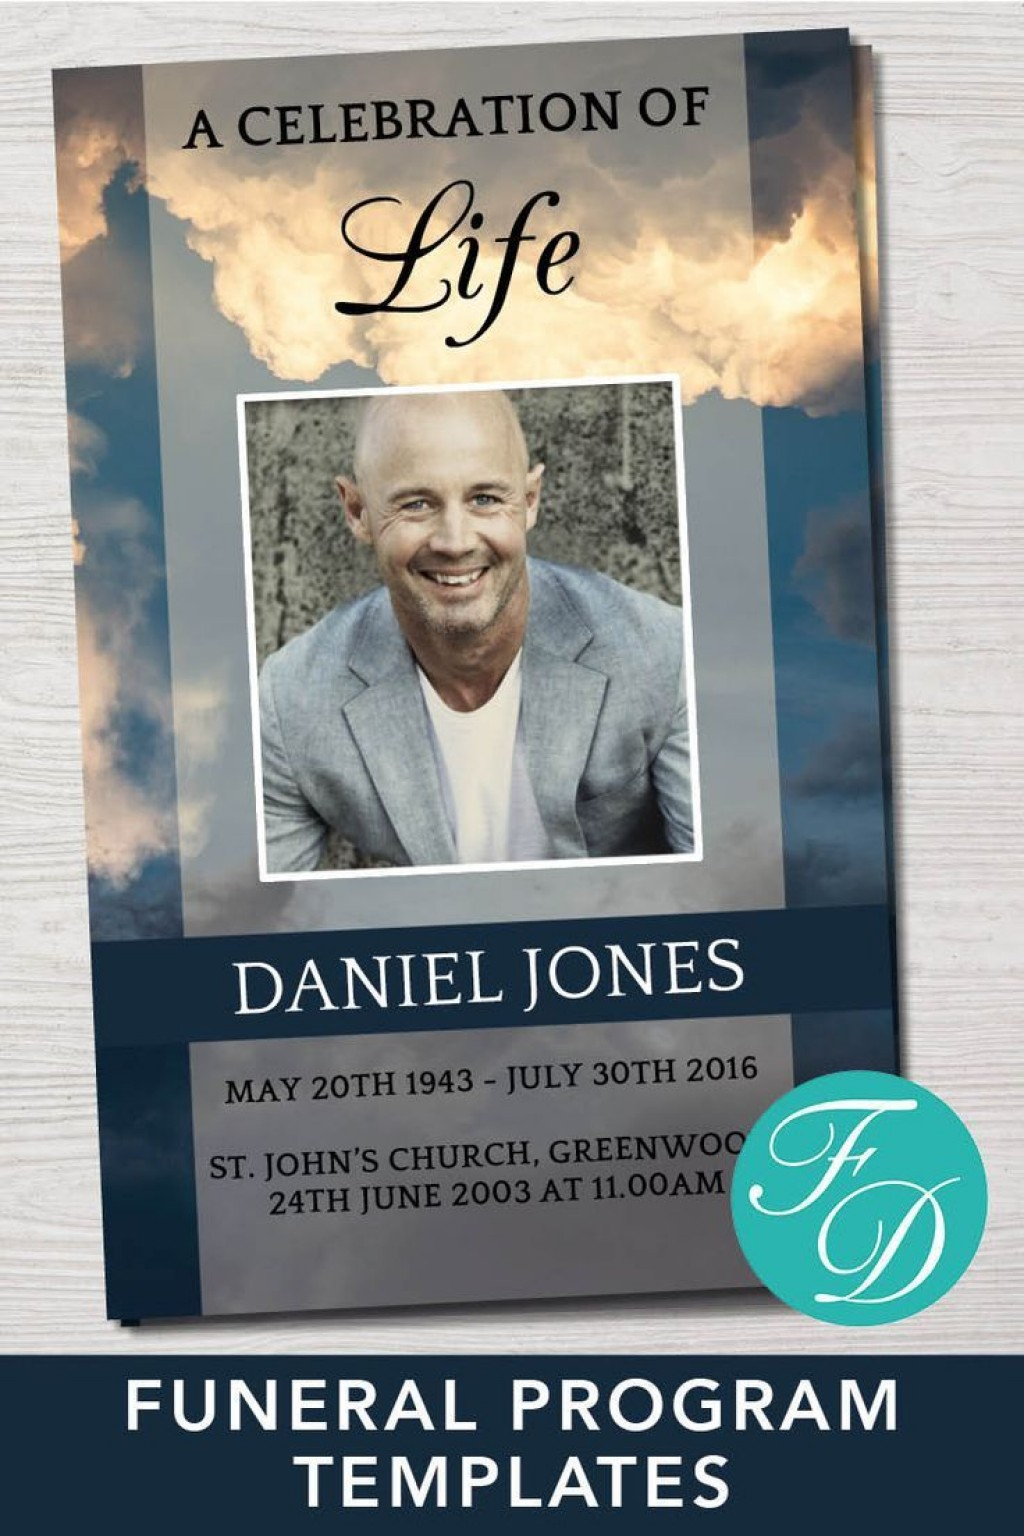 001 Simple Free Celebration Of Life Program Template Download Example Large